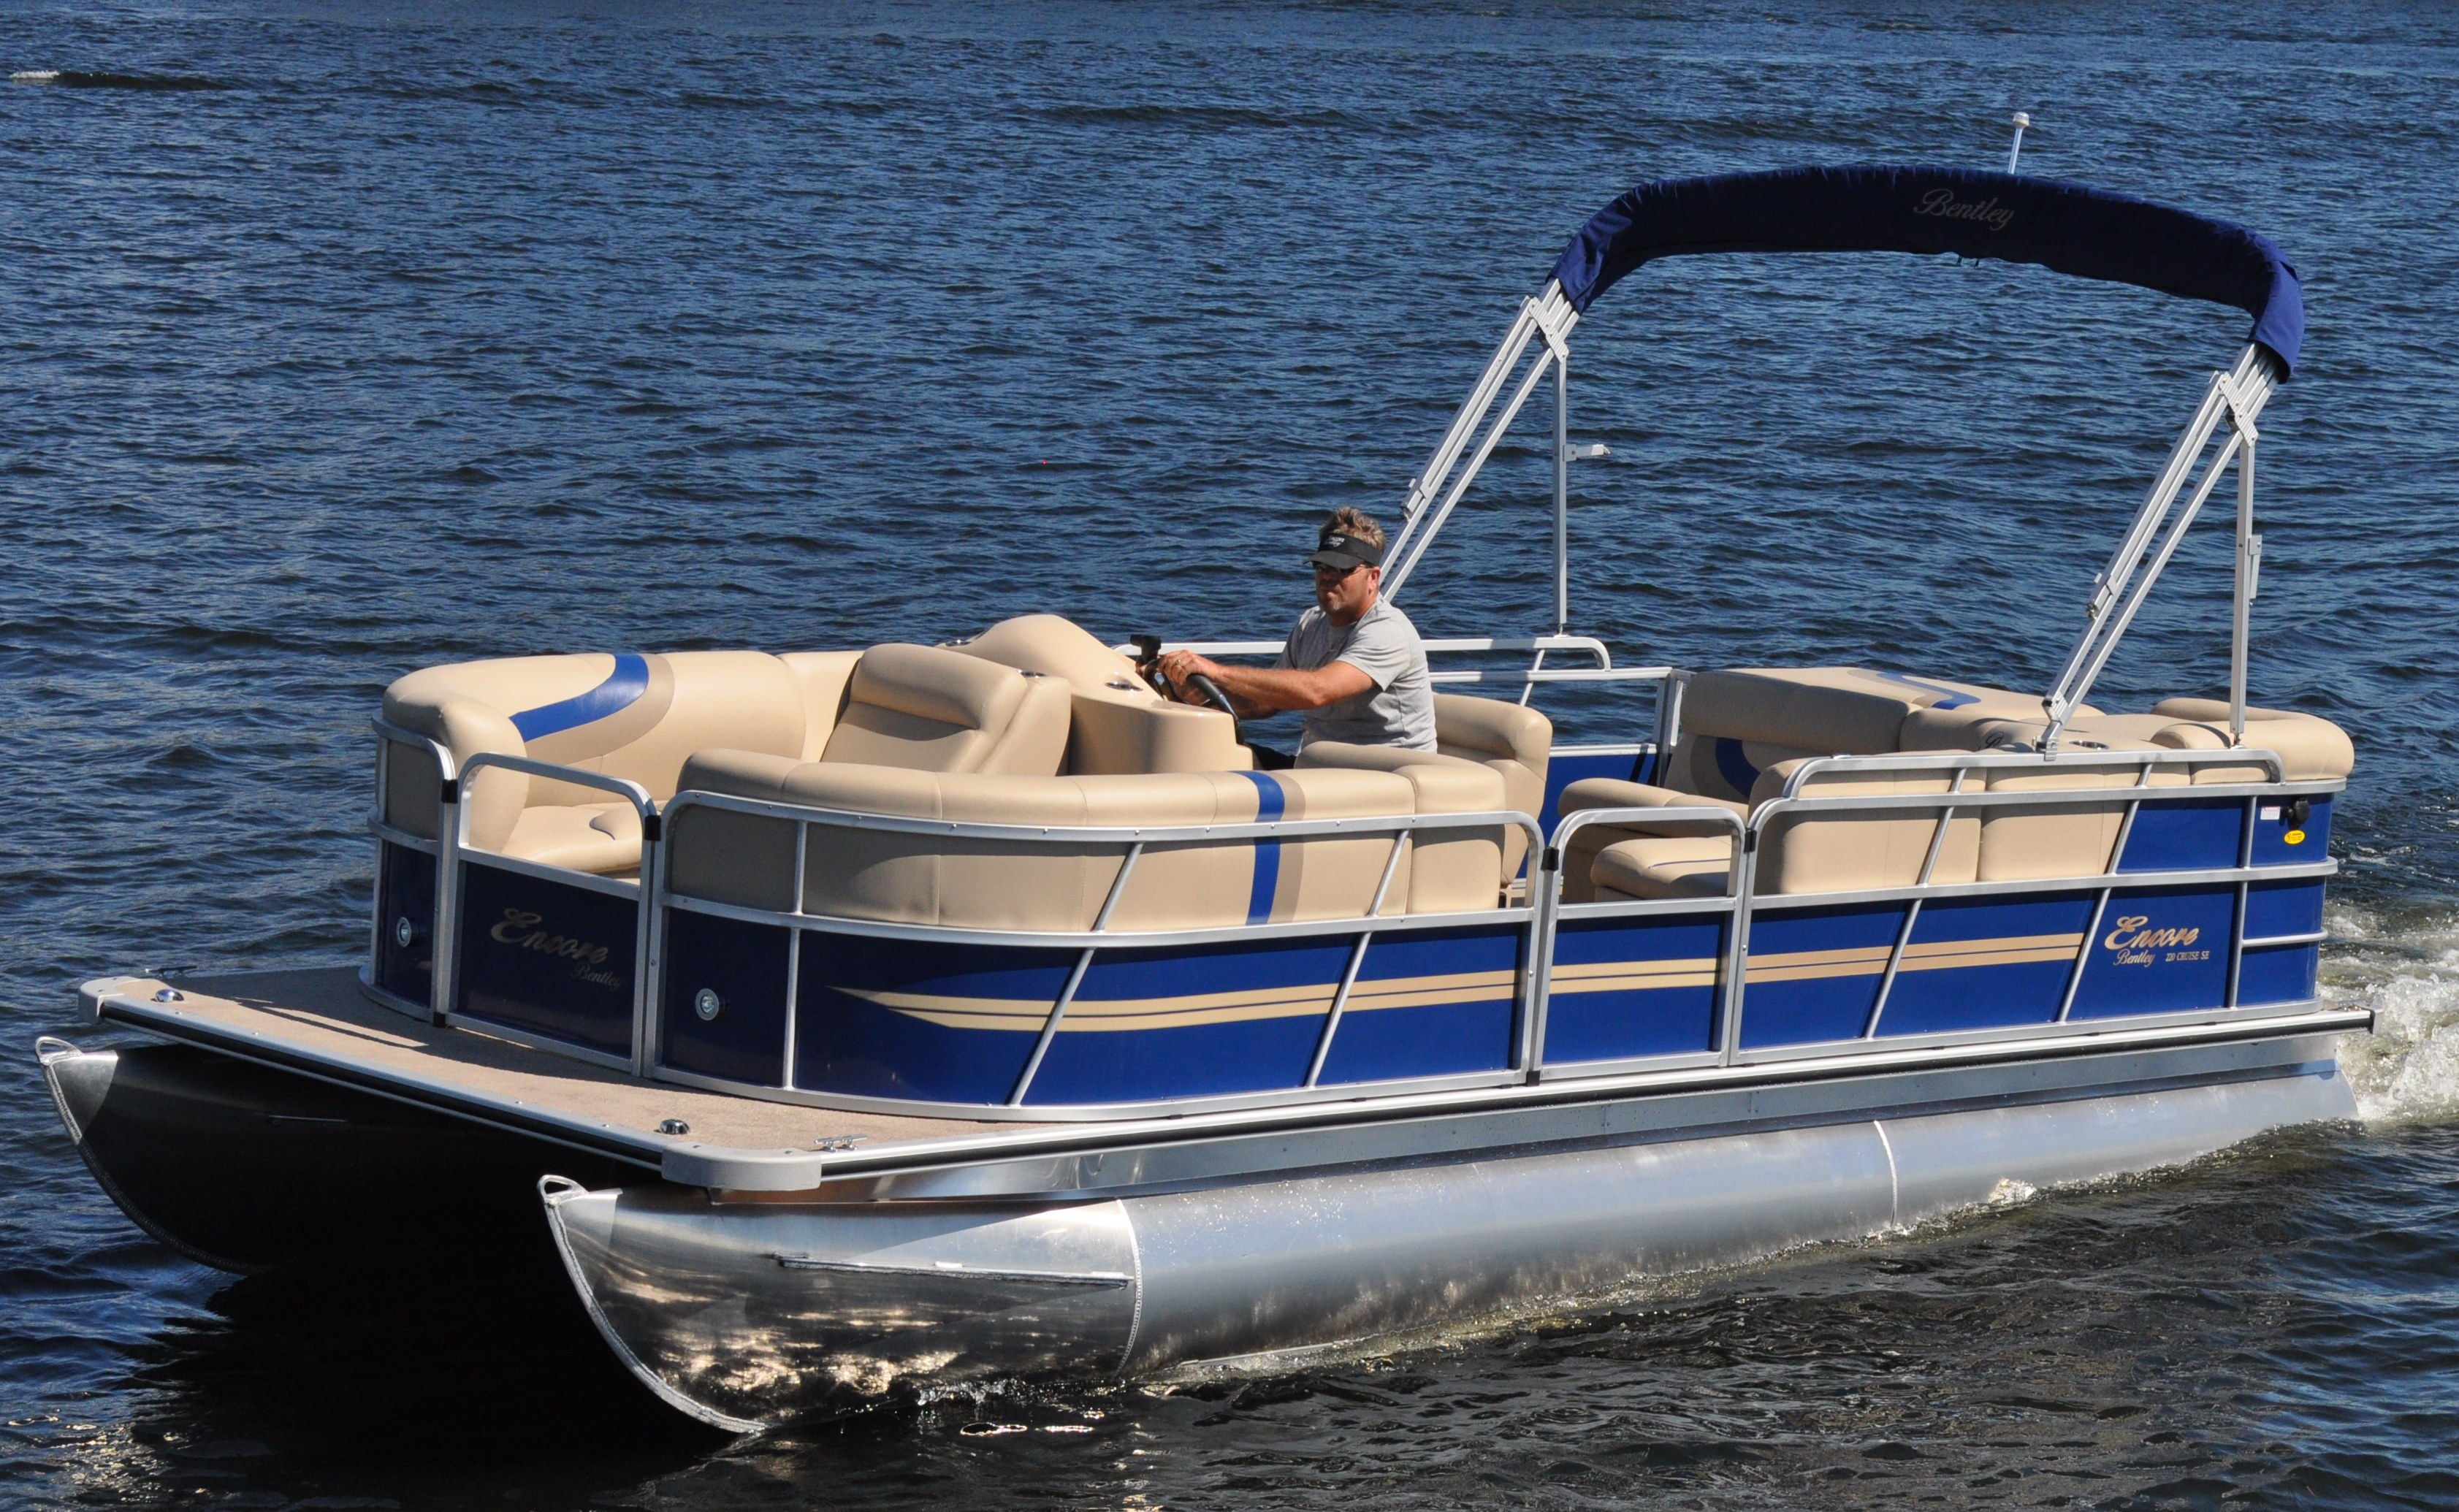 Destin Boat Rentals & Rates - Voted Best on the Emerald Coast